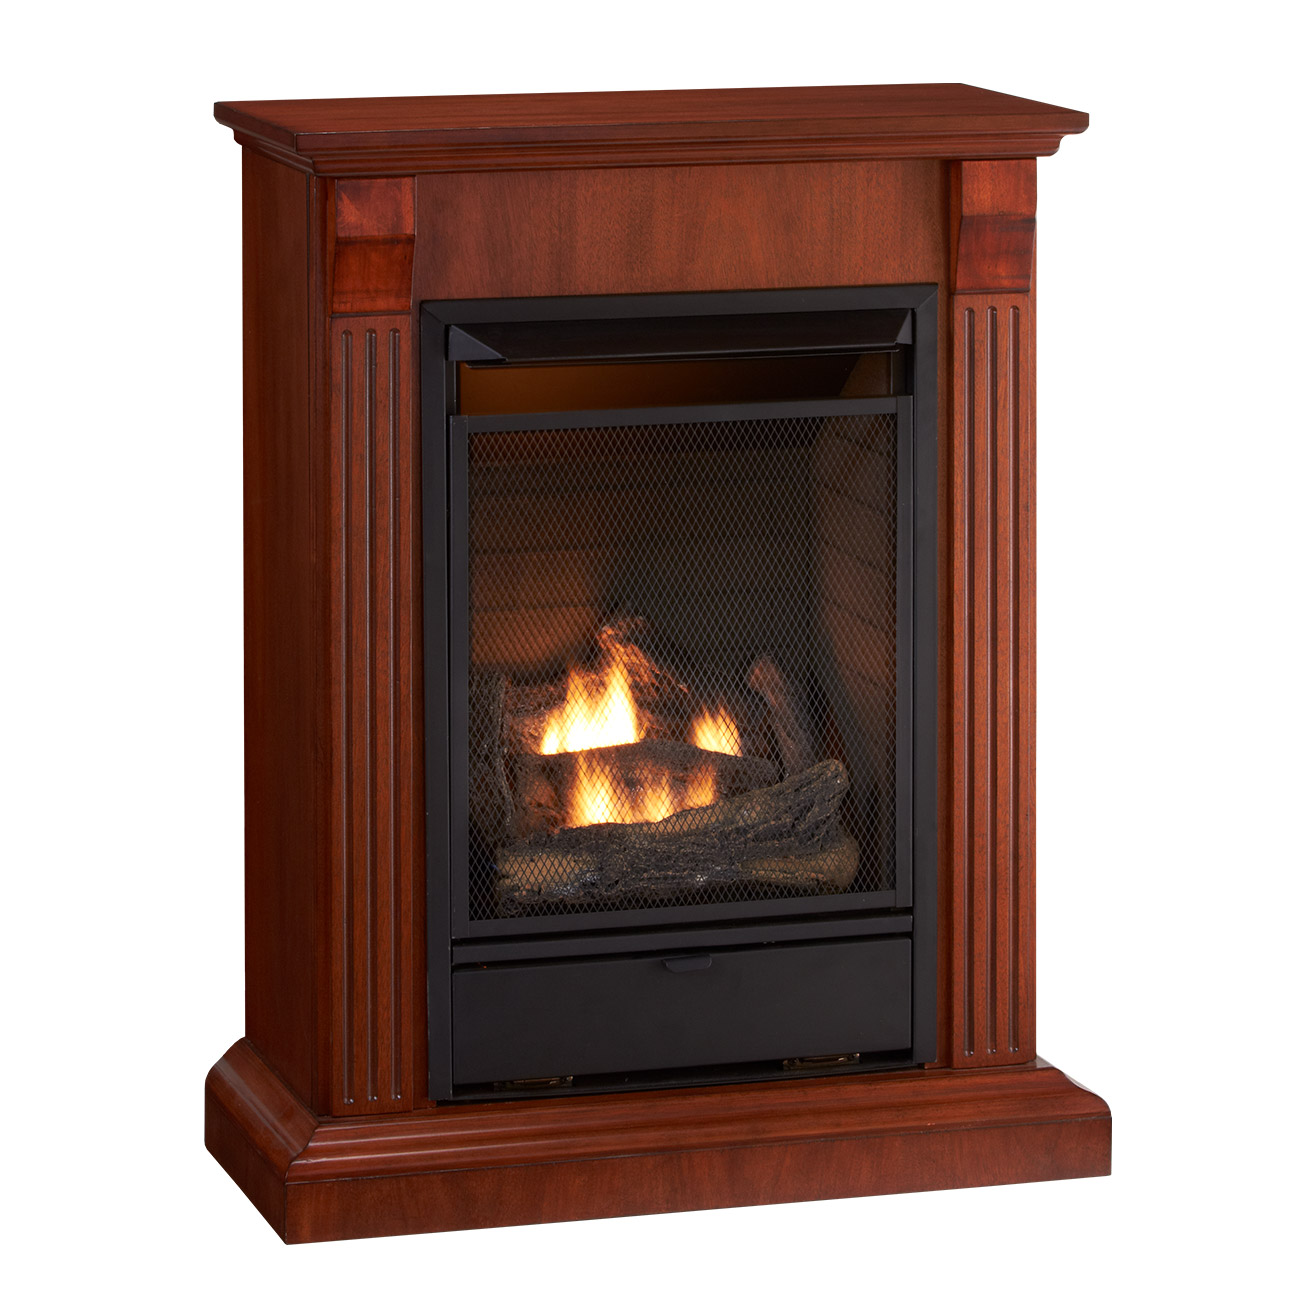 Procom Ventless Fireplace Inserts Fireplace